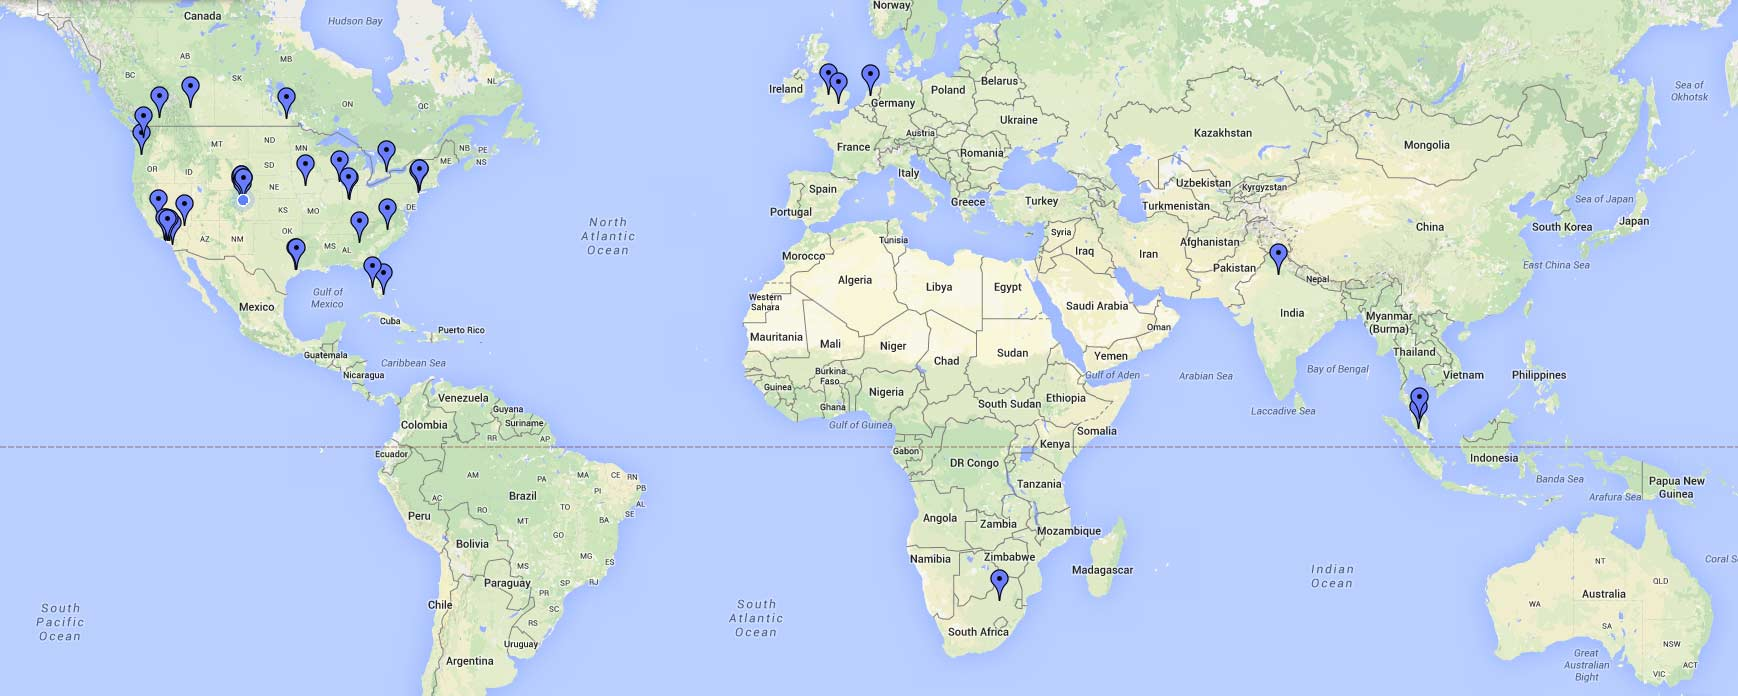 Trepoly Map of Customers Image